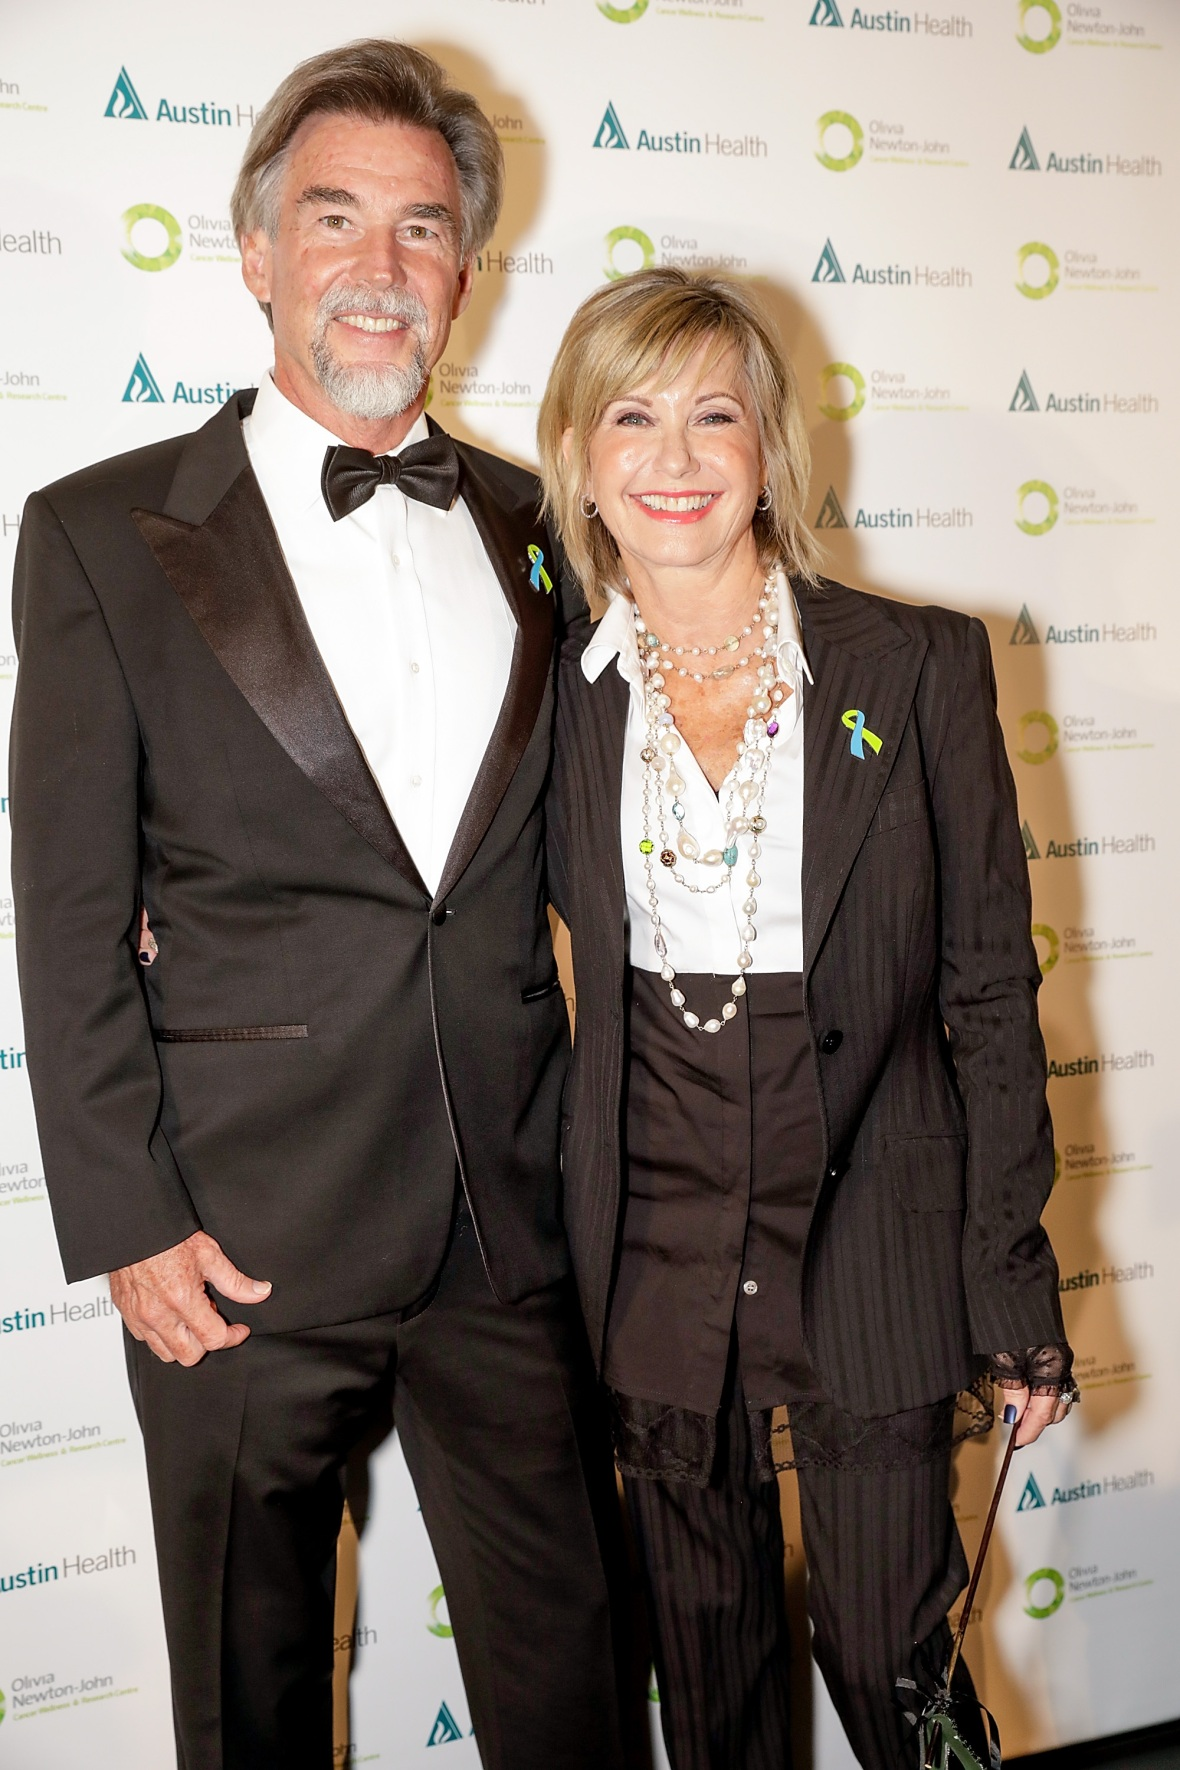 olivia newton-john and john easterling getty images